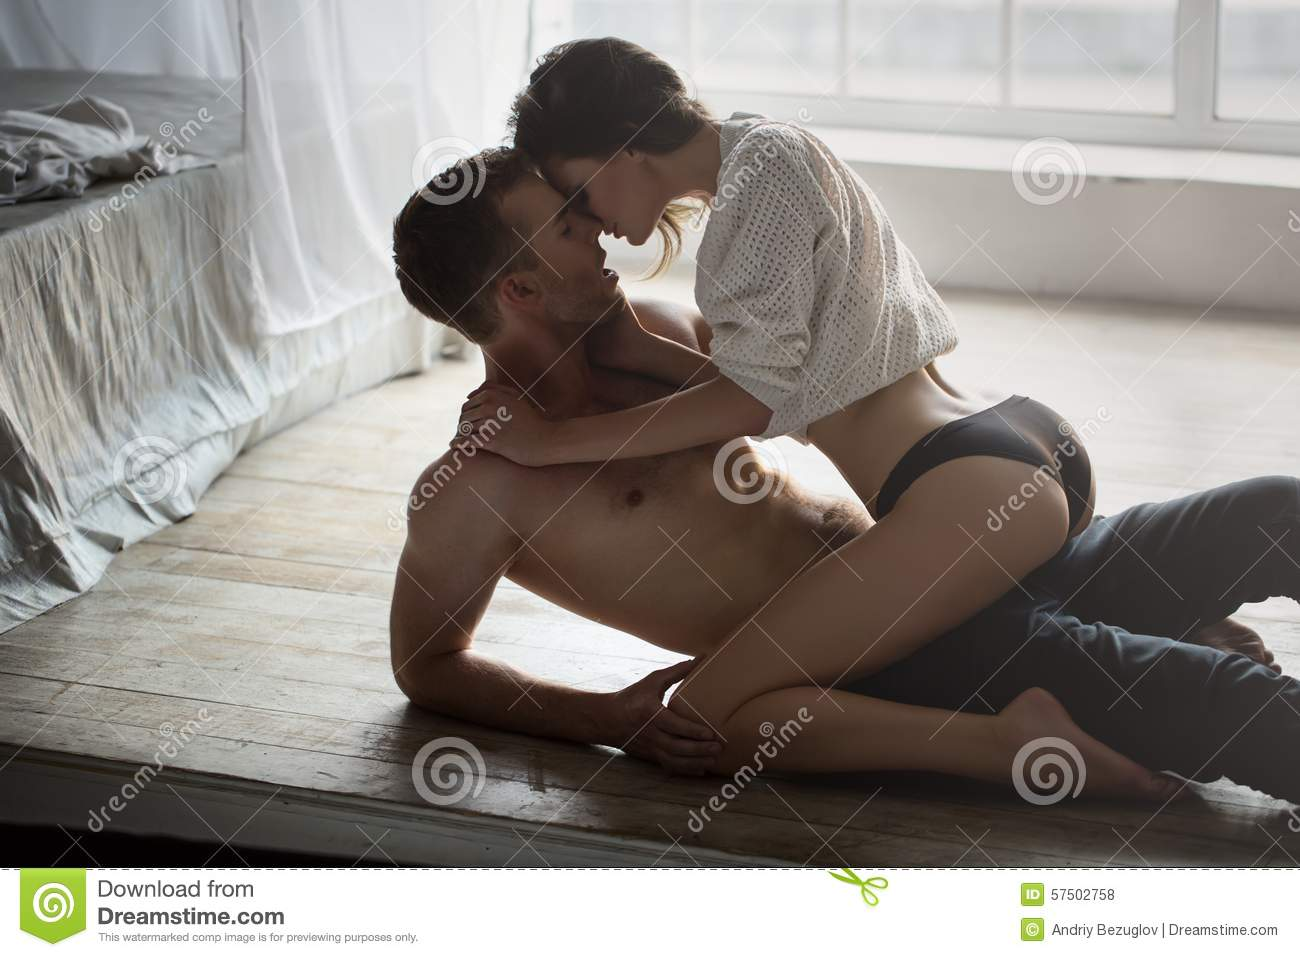 Girl and boy kissing on bed images-2942